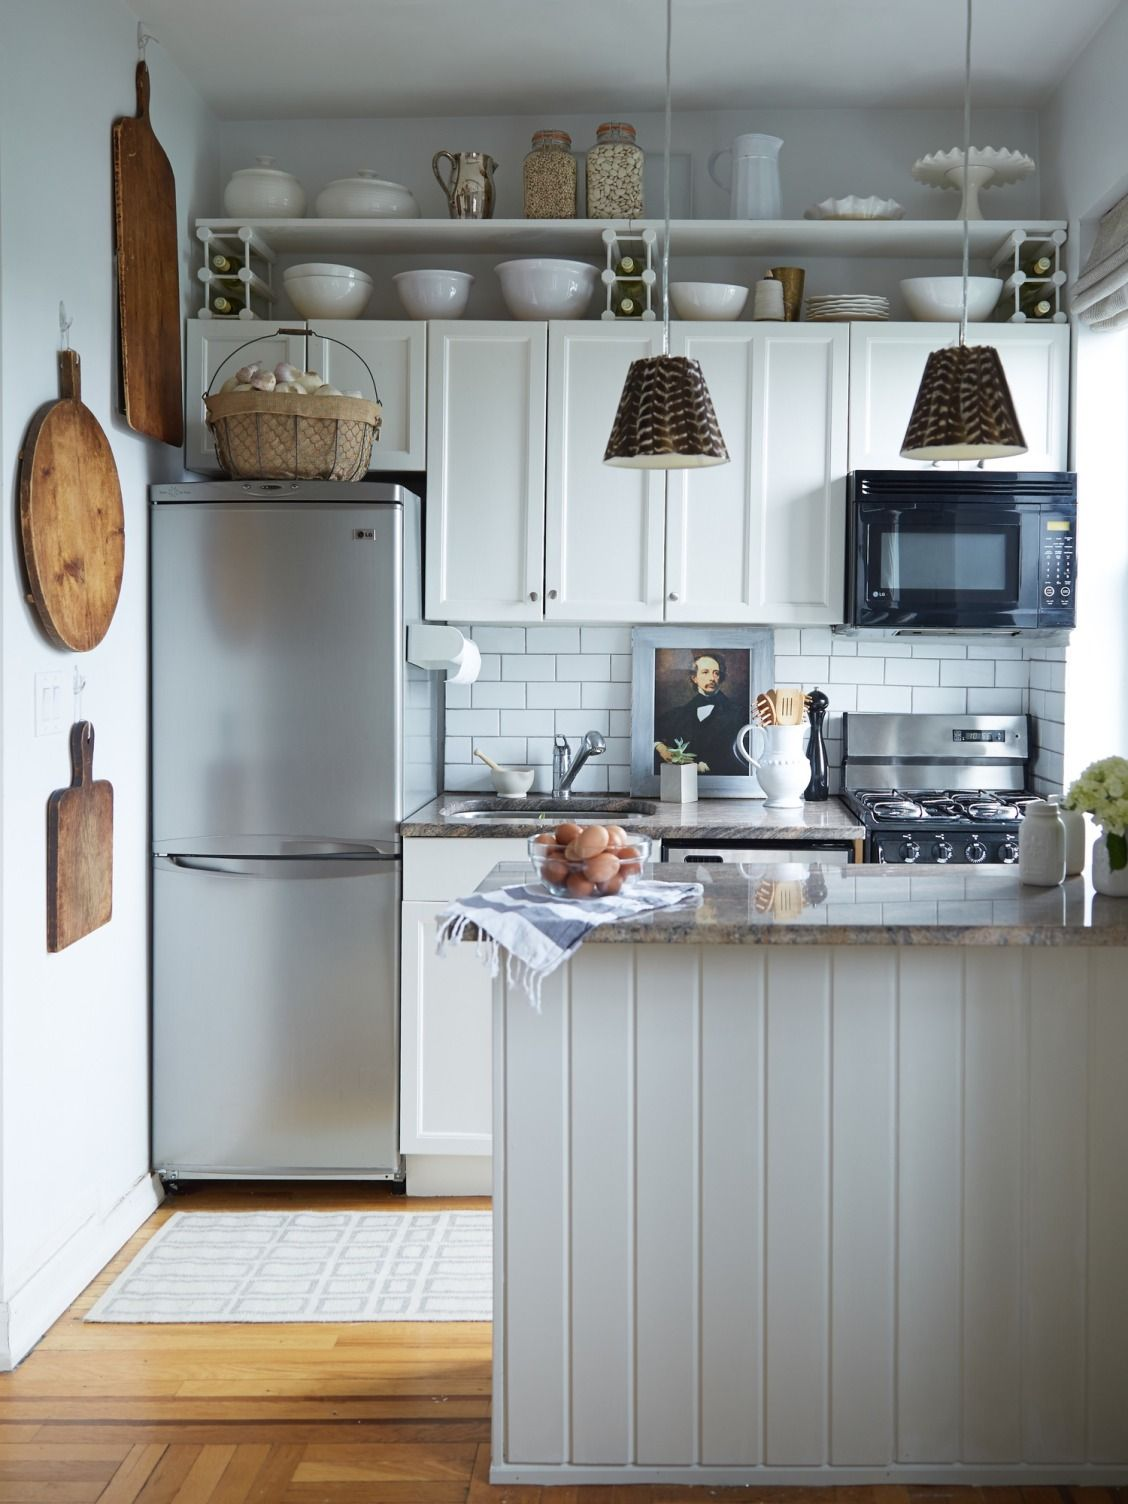 9 Ways You Should Rethink Your Wall Shelving | Kitchens | Pinterest ...